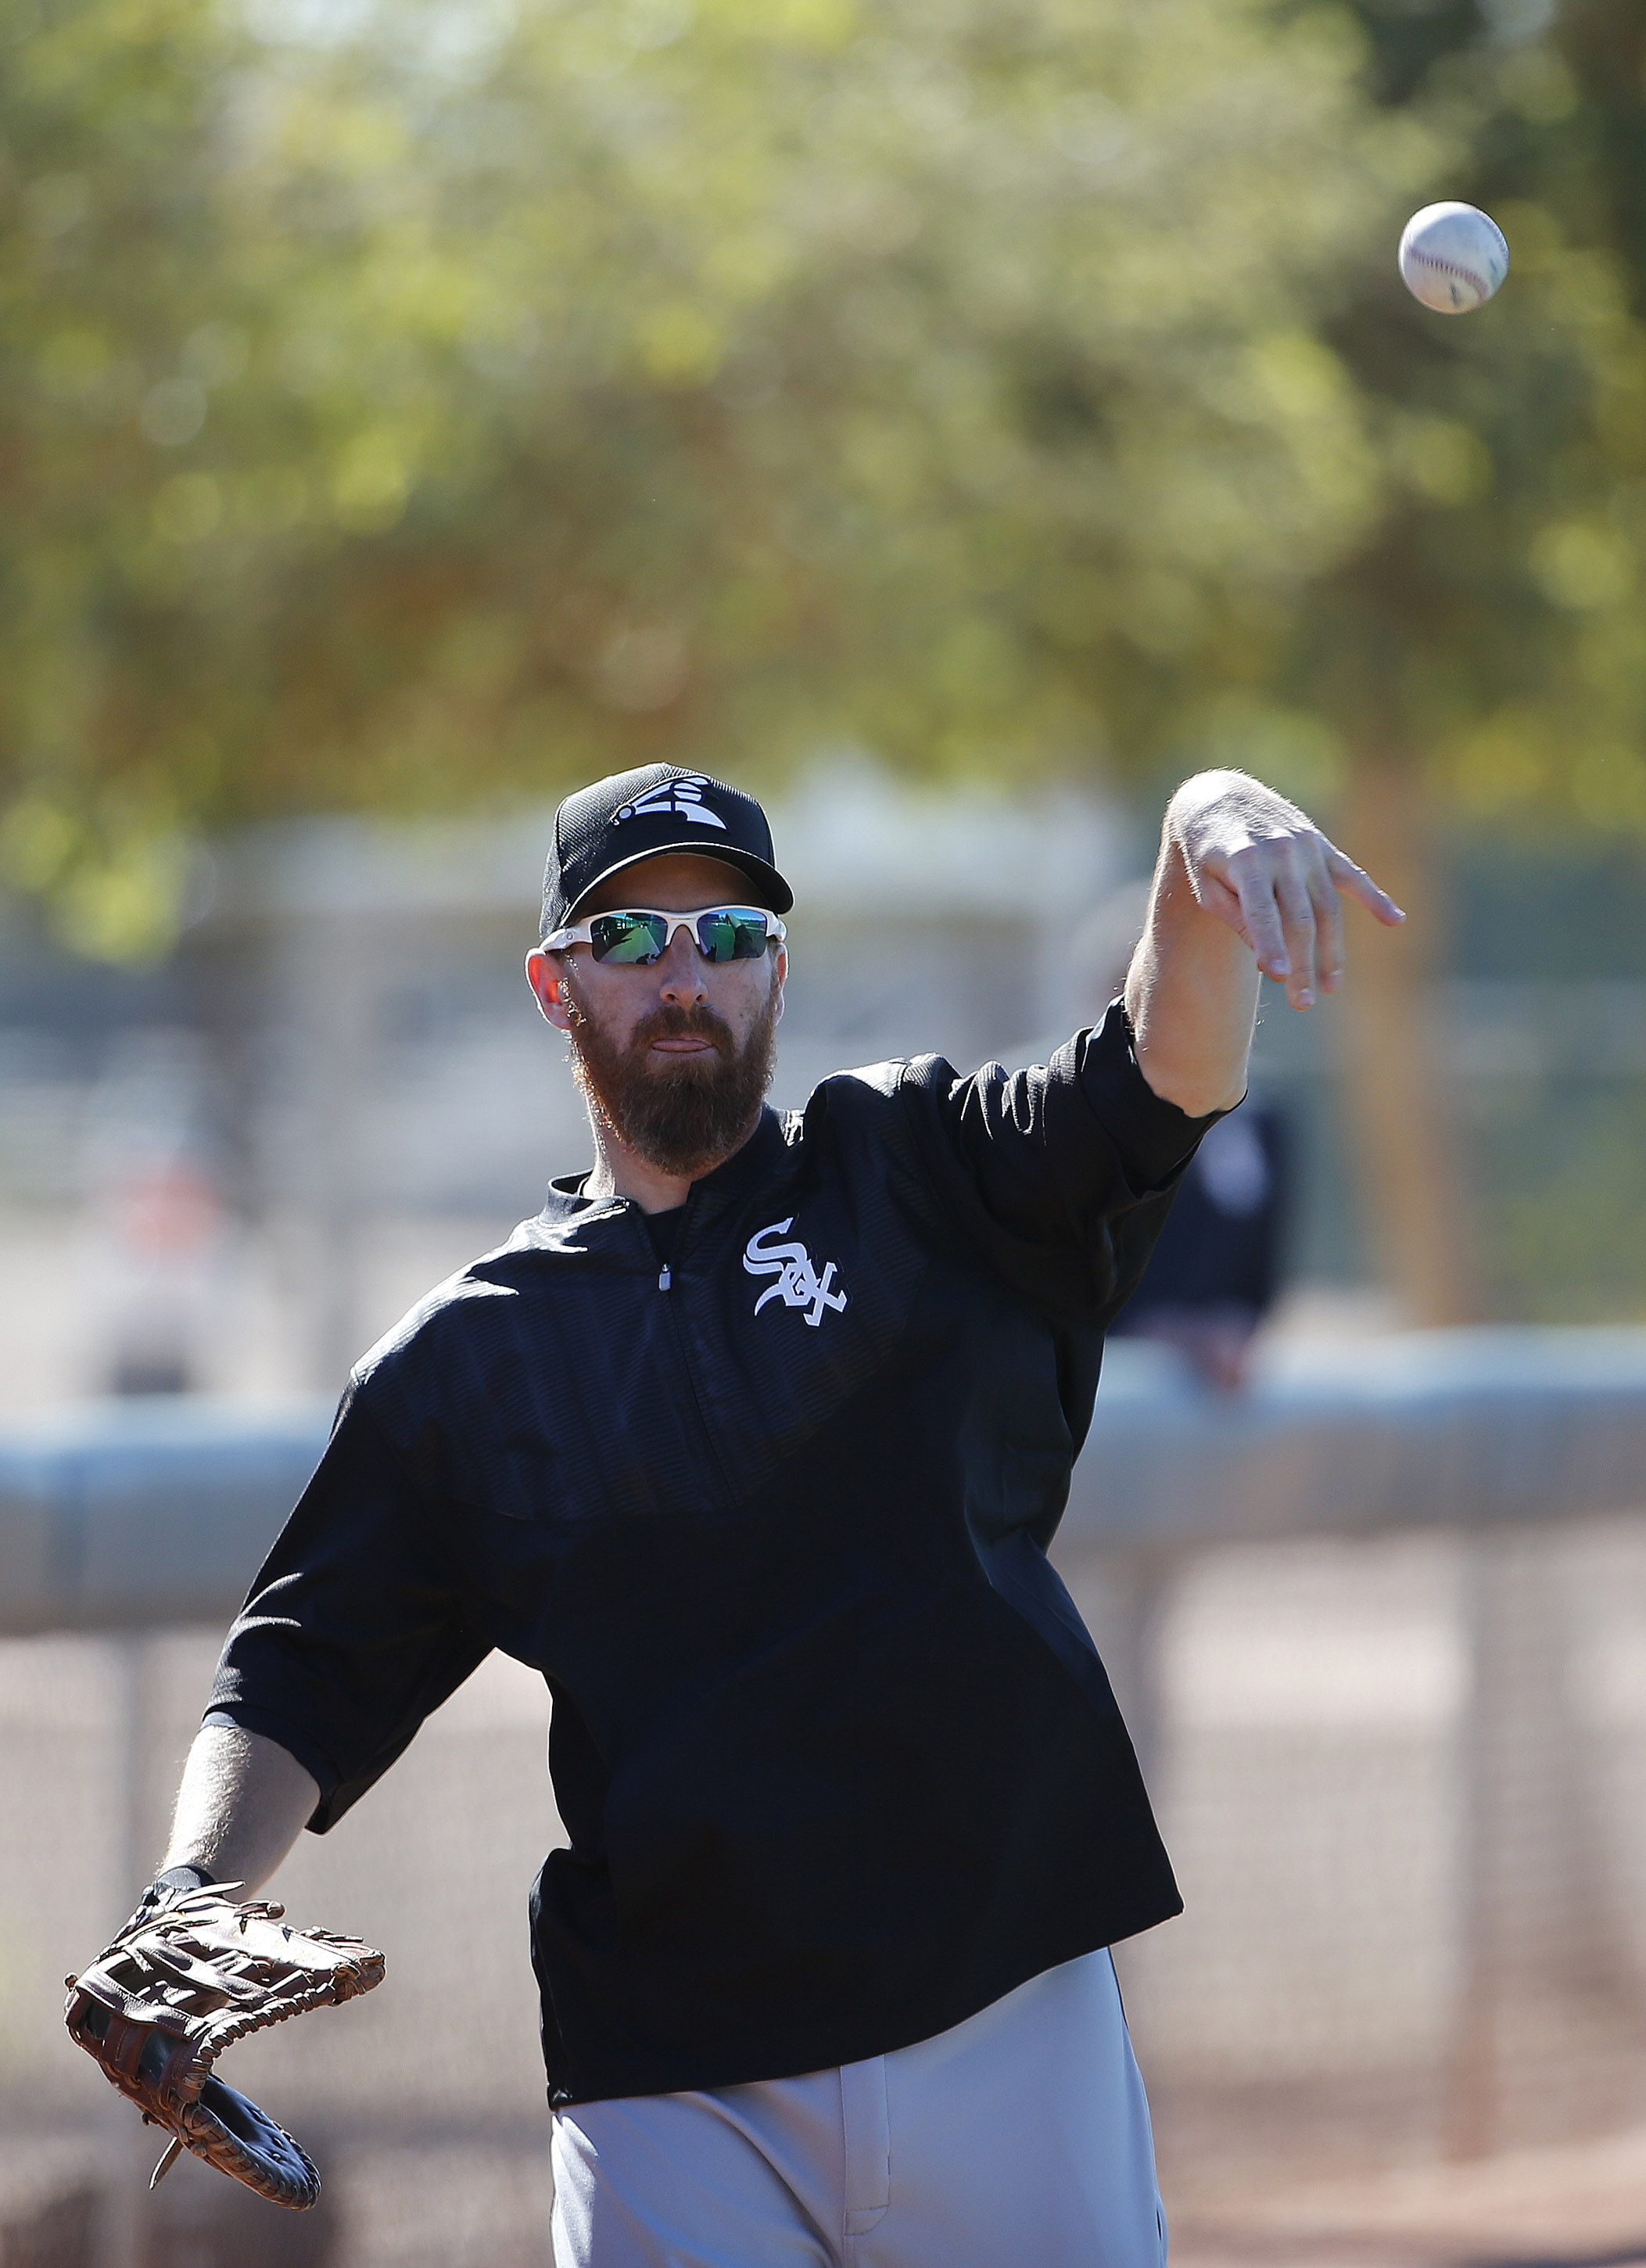 Chicago White Sox's Adam LaRoche warms up during a spring training baseball workout Wednesday, Feb. 24, 2016, in Glendale, Ariz. (AP Photo/Ross D. Franklin)